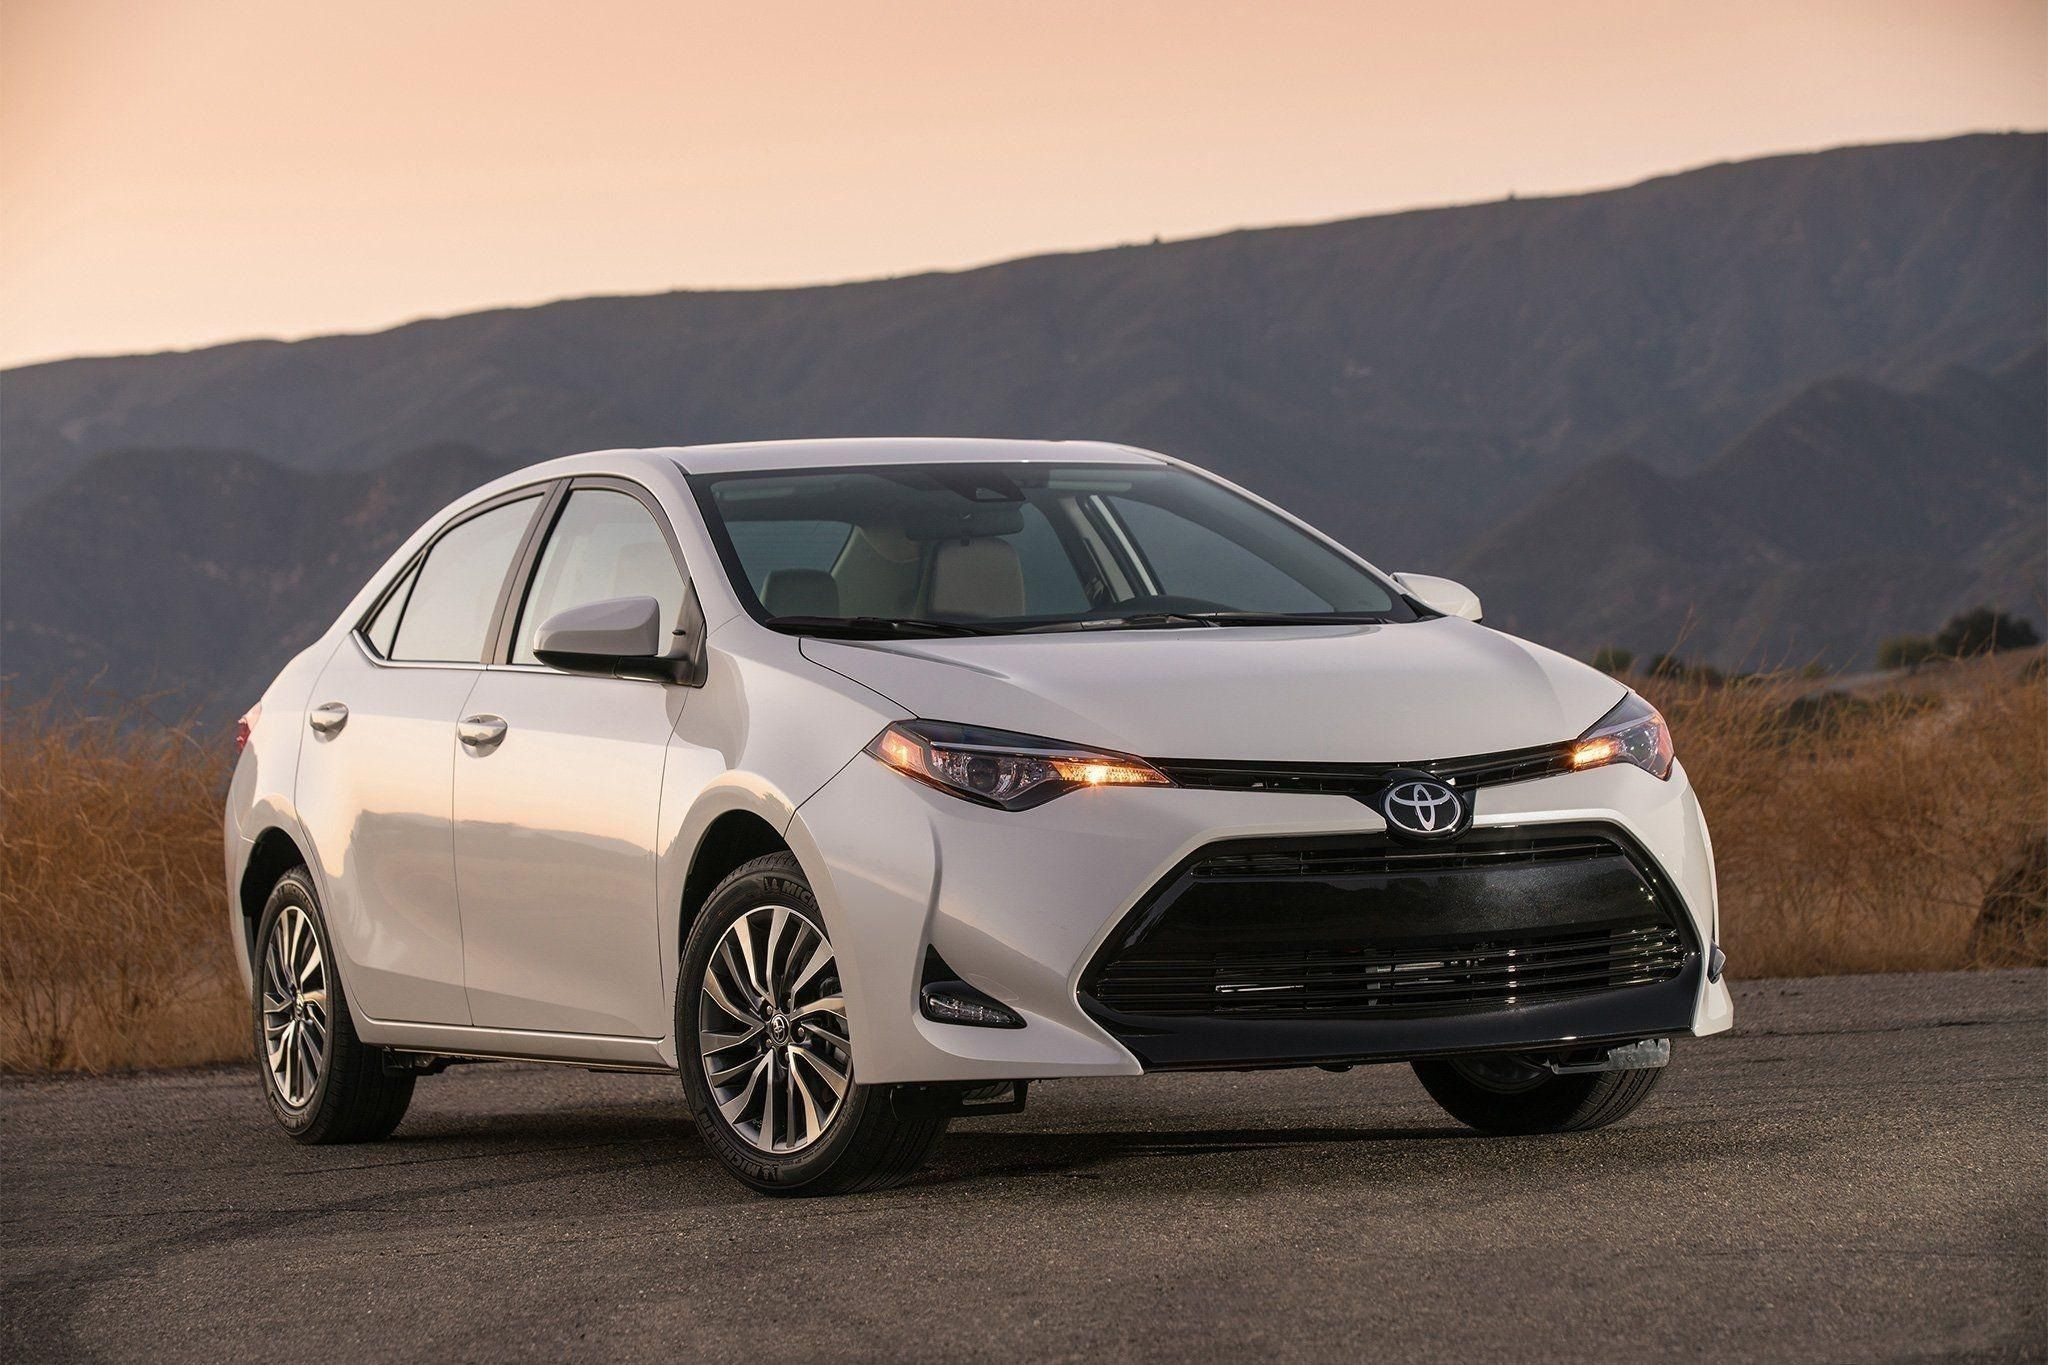 Toyota Corolla Mpg >> Best 2019 Toyota Corolla Mpg Spy Shoot Springbreak Car Search